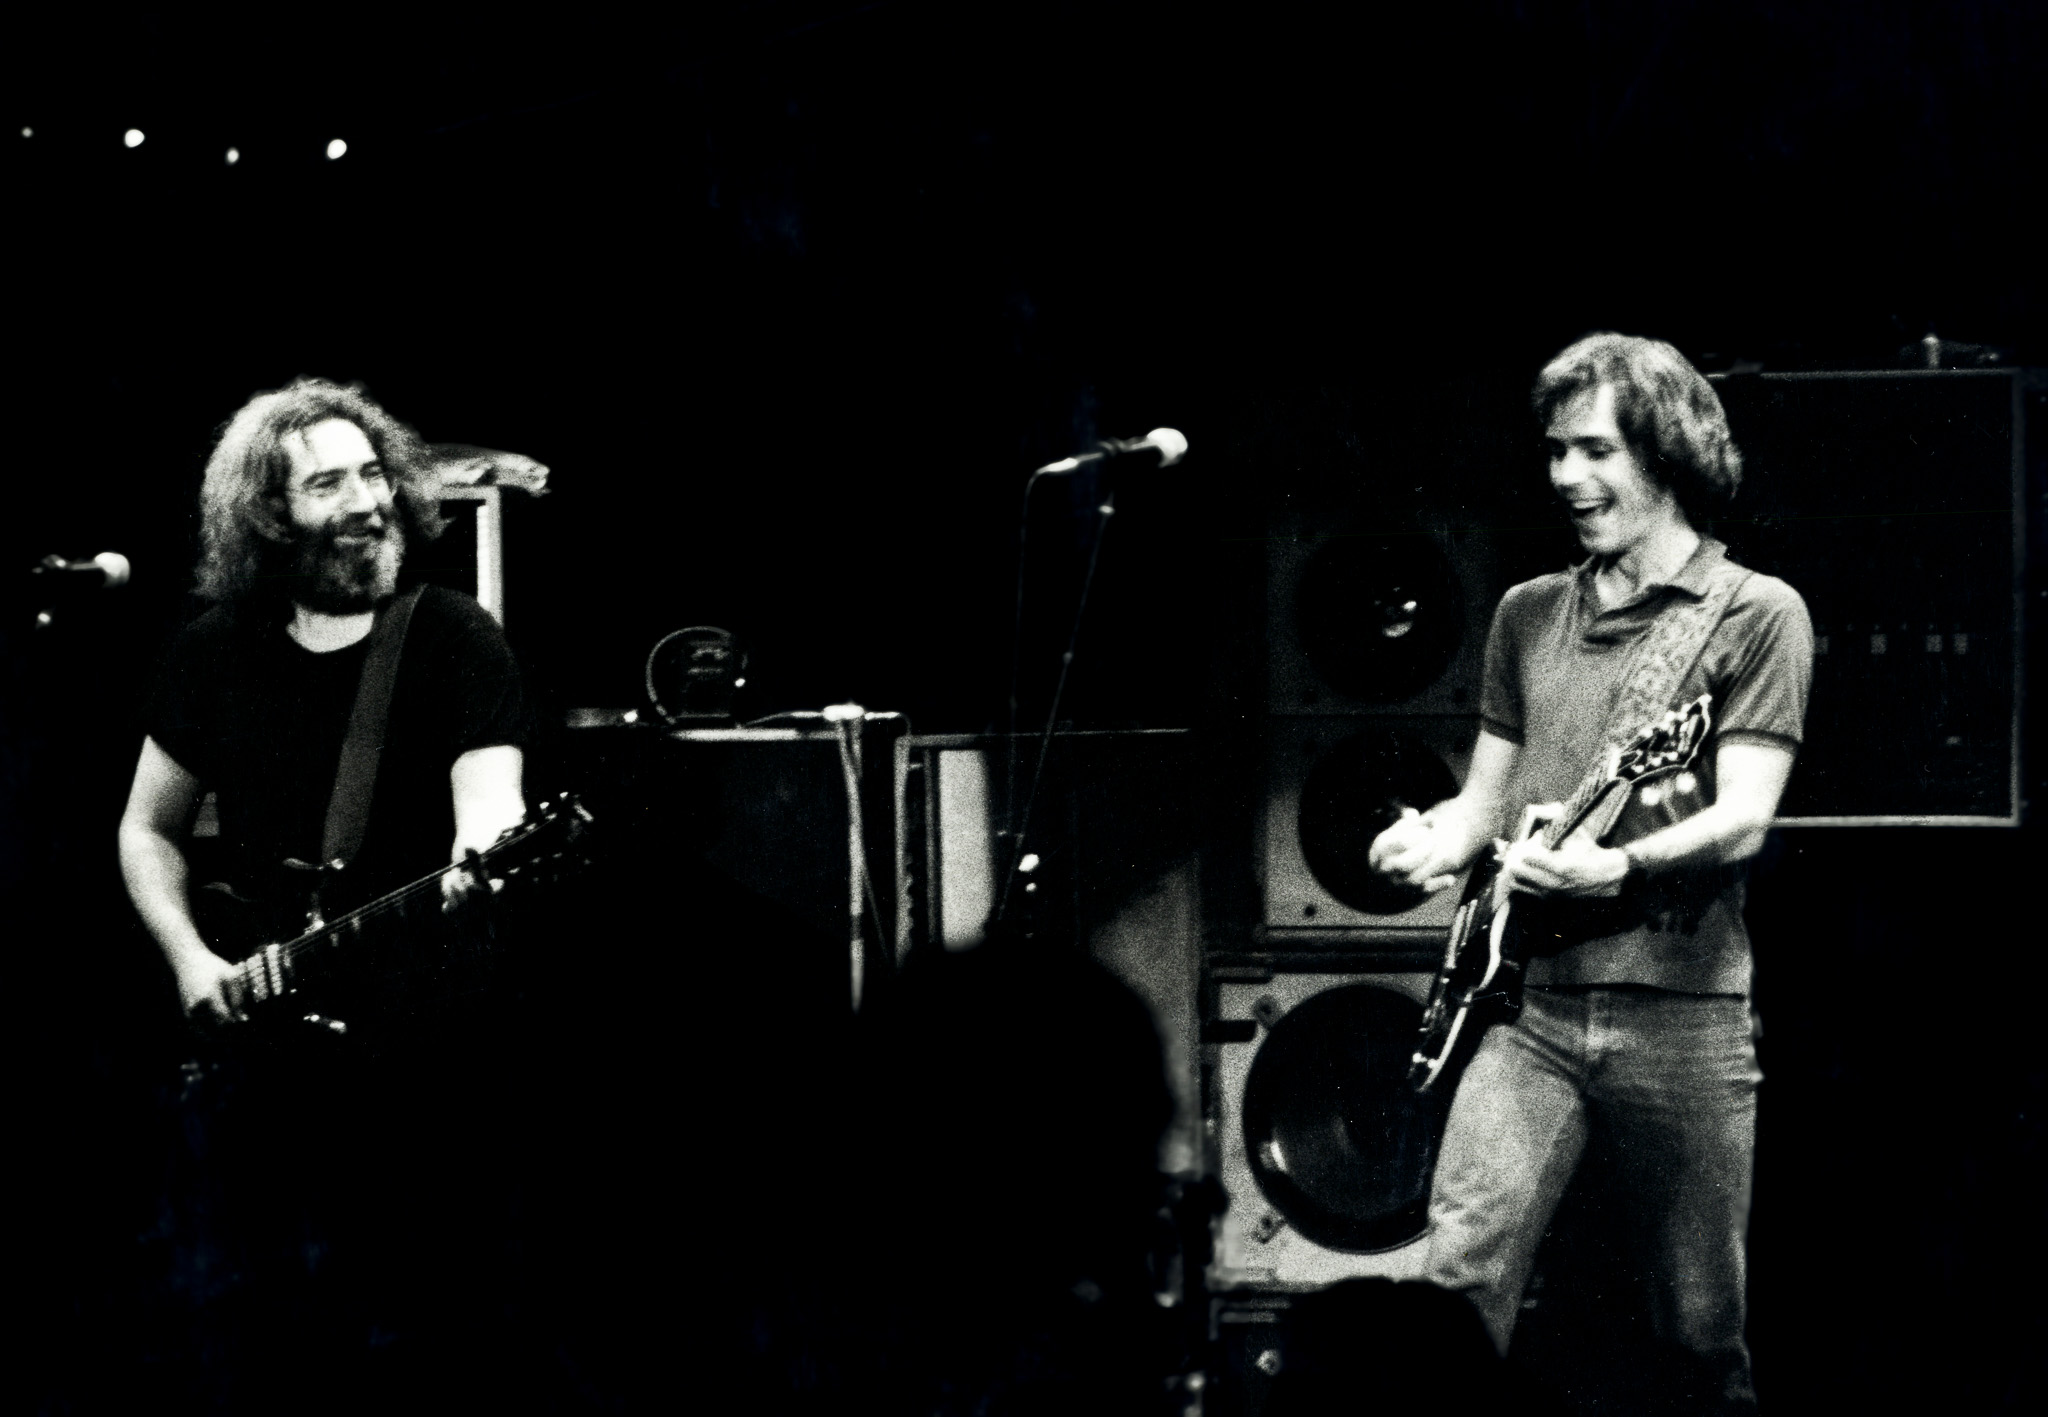 Jerry & Bob at the Warfield Theater, SF in 1980